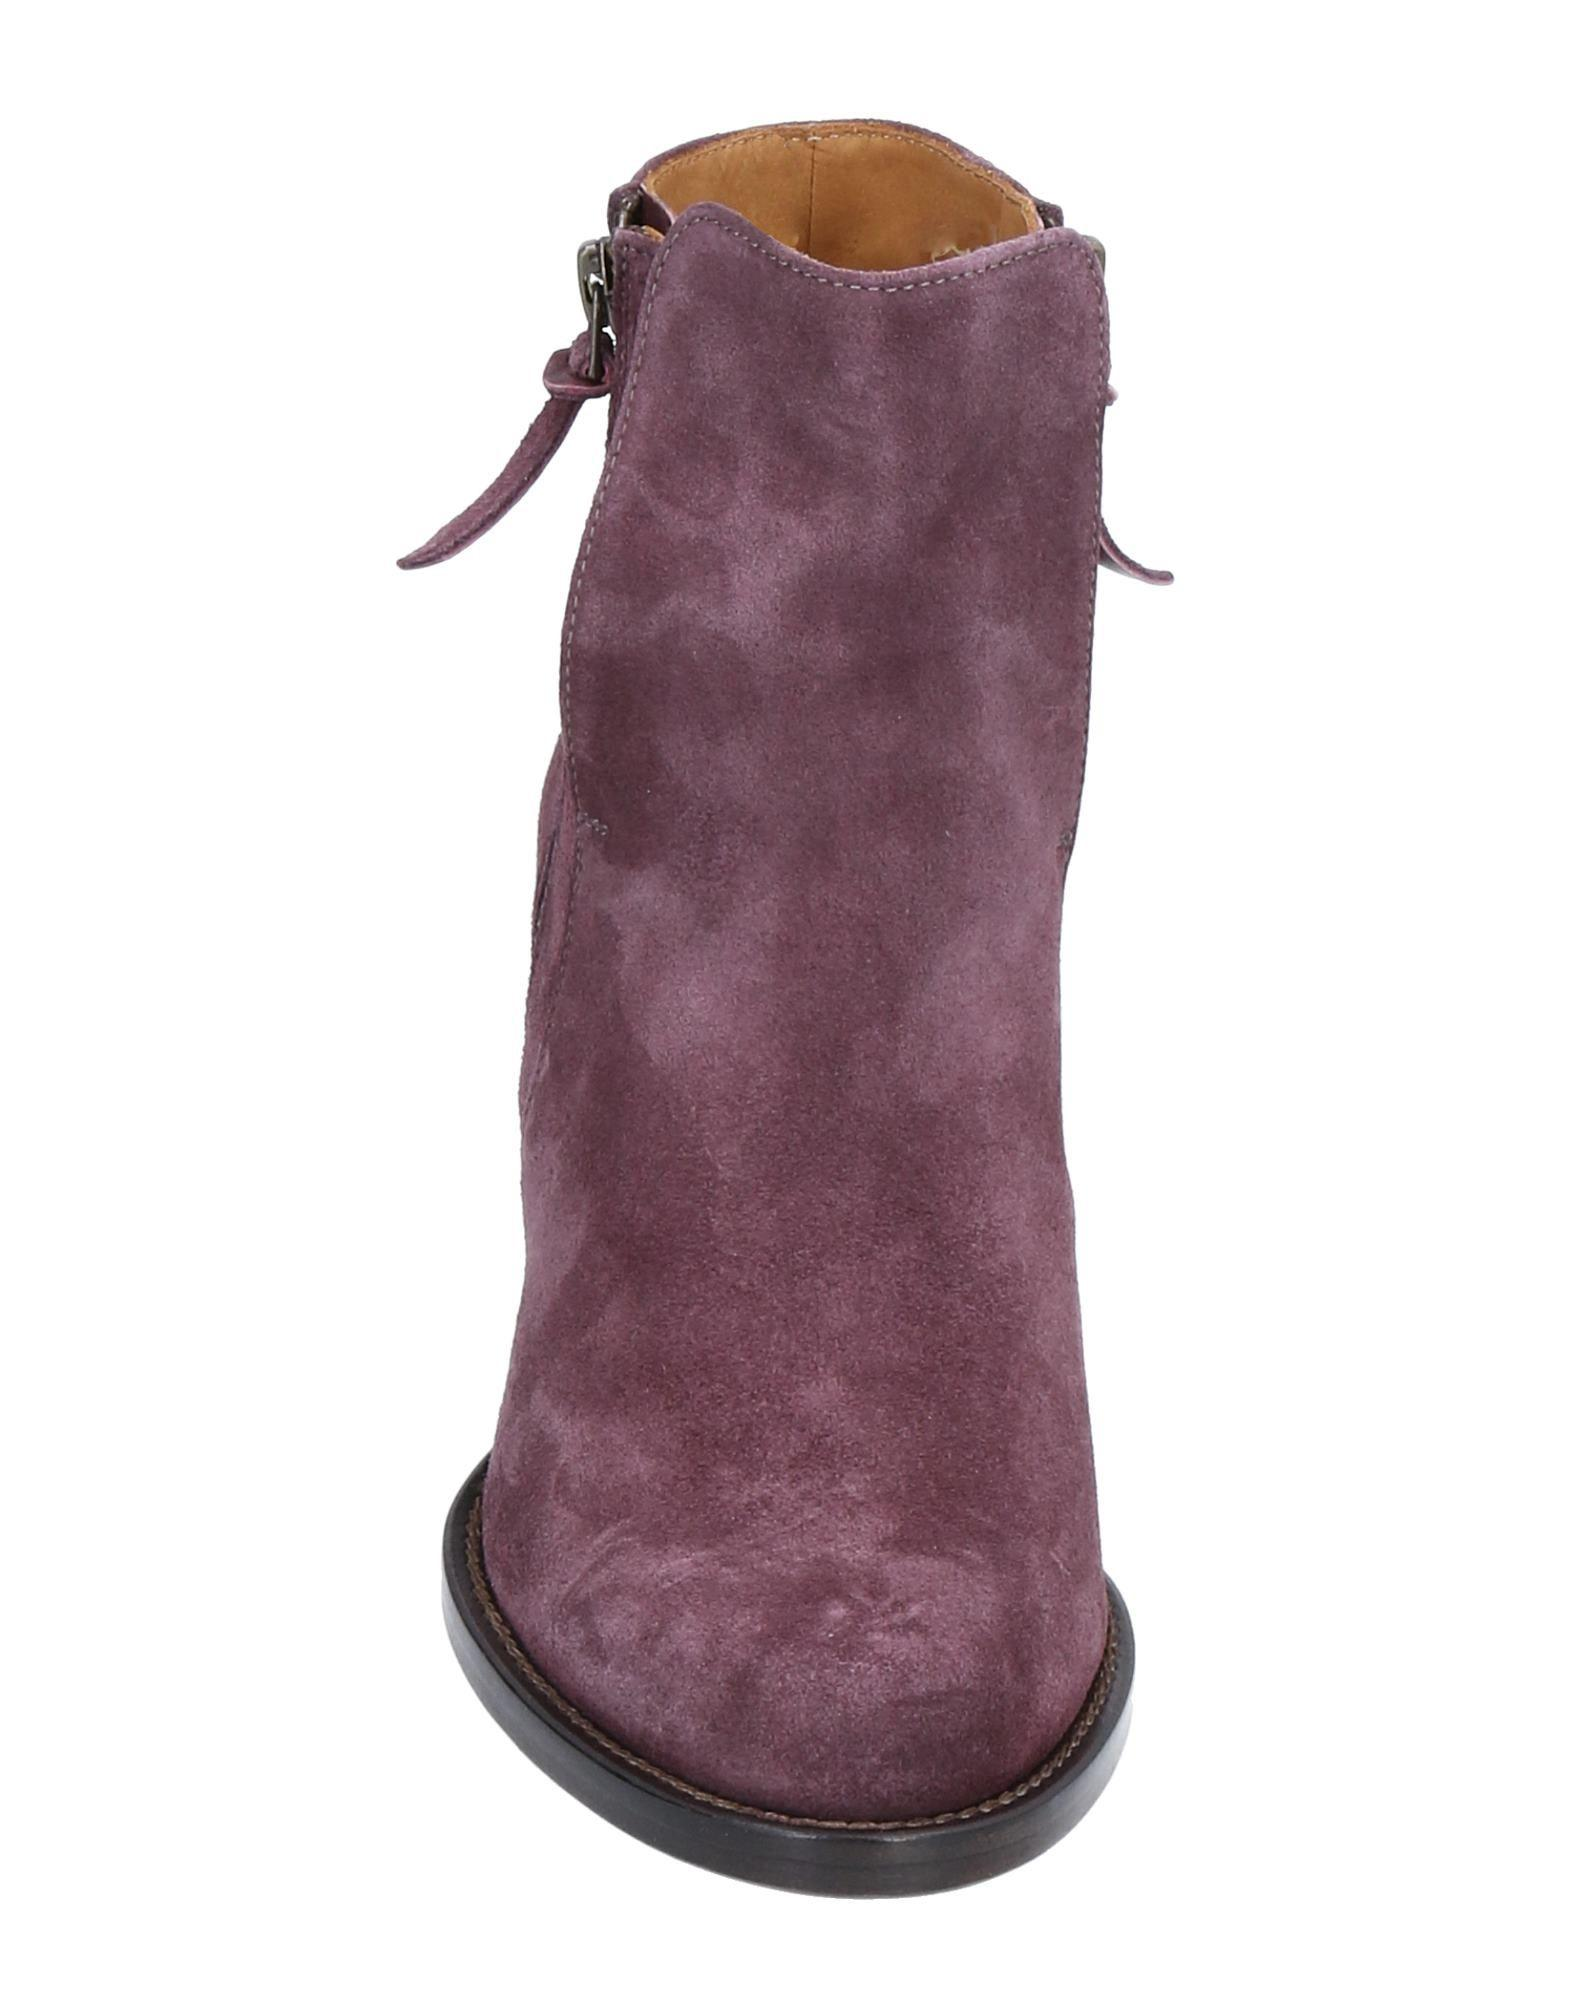 N.d.c. Made By Hand Leather Ankle Boots in Purple